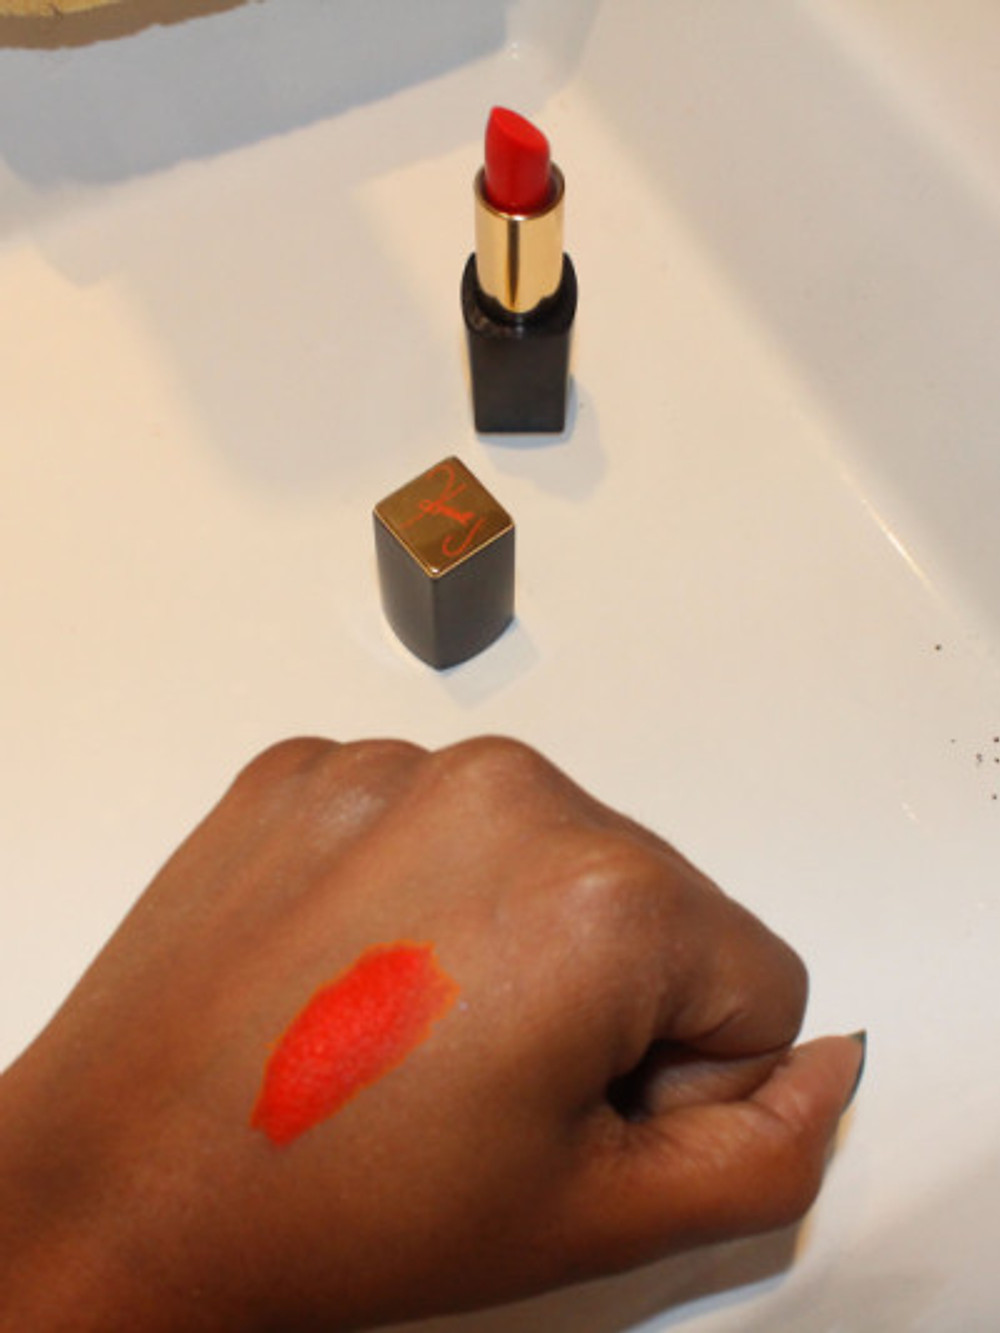 ROUGE A LEVRES RESTLESS by KENDALL JENNER & ESTEE LAUDER